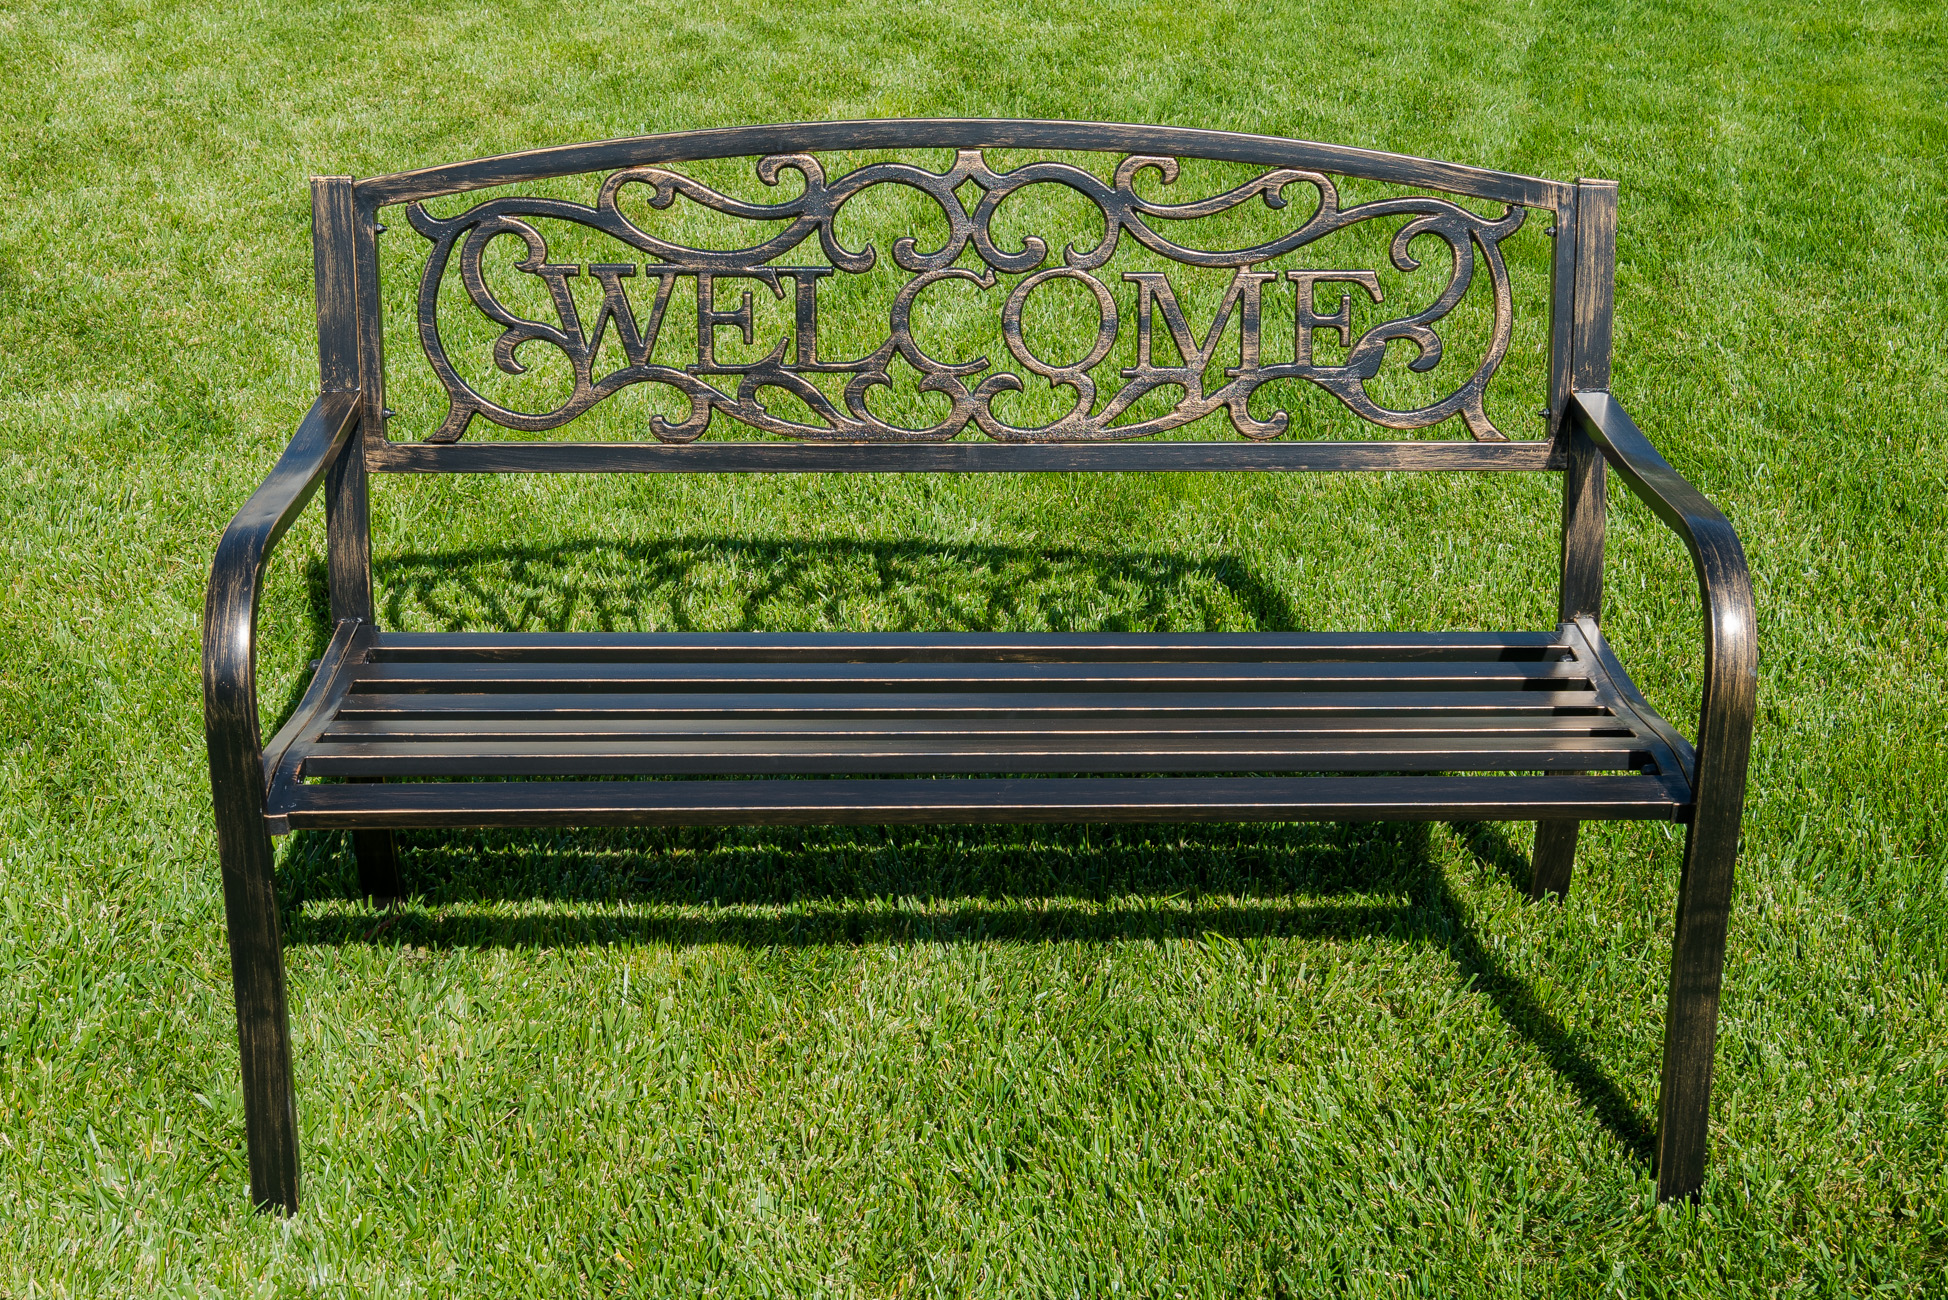 New 50 Inch Outdoor Garden Bench Patio Furniture Welcome Design Love Seat Home Ebay